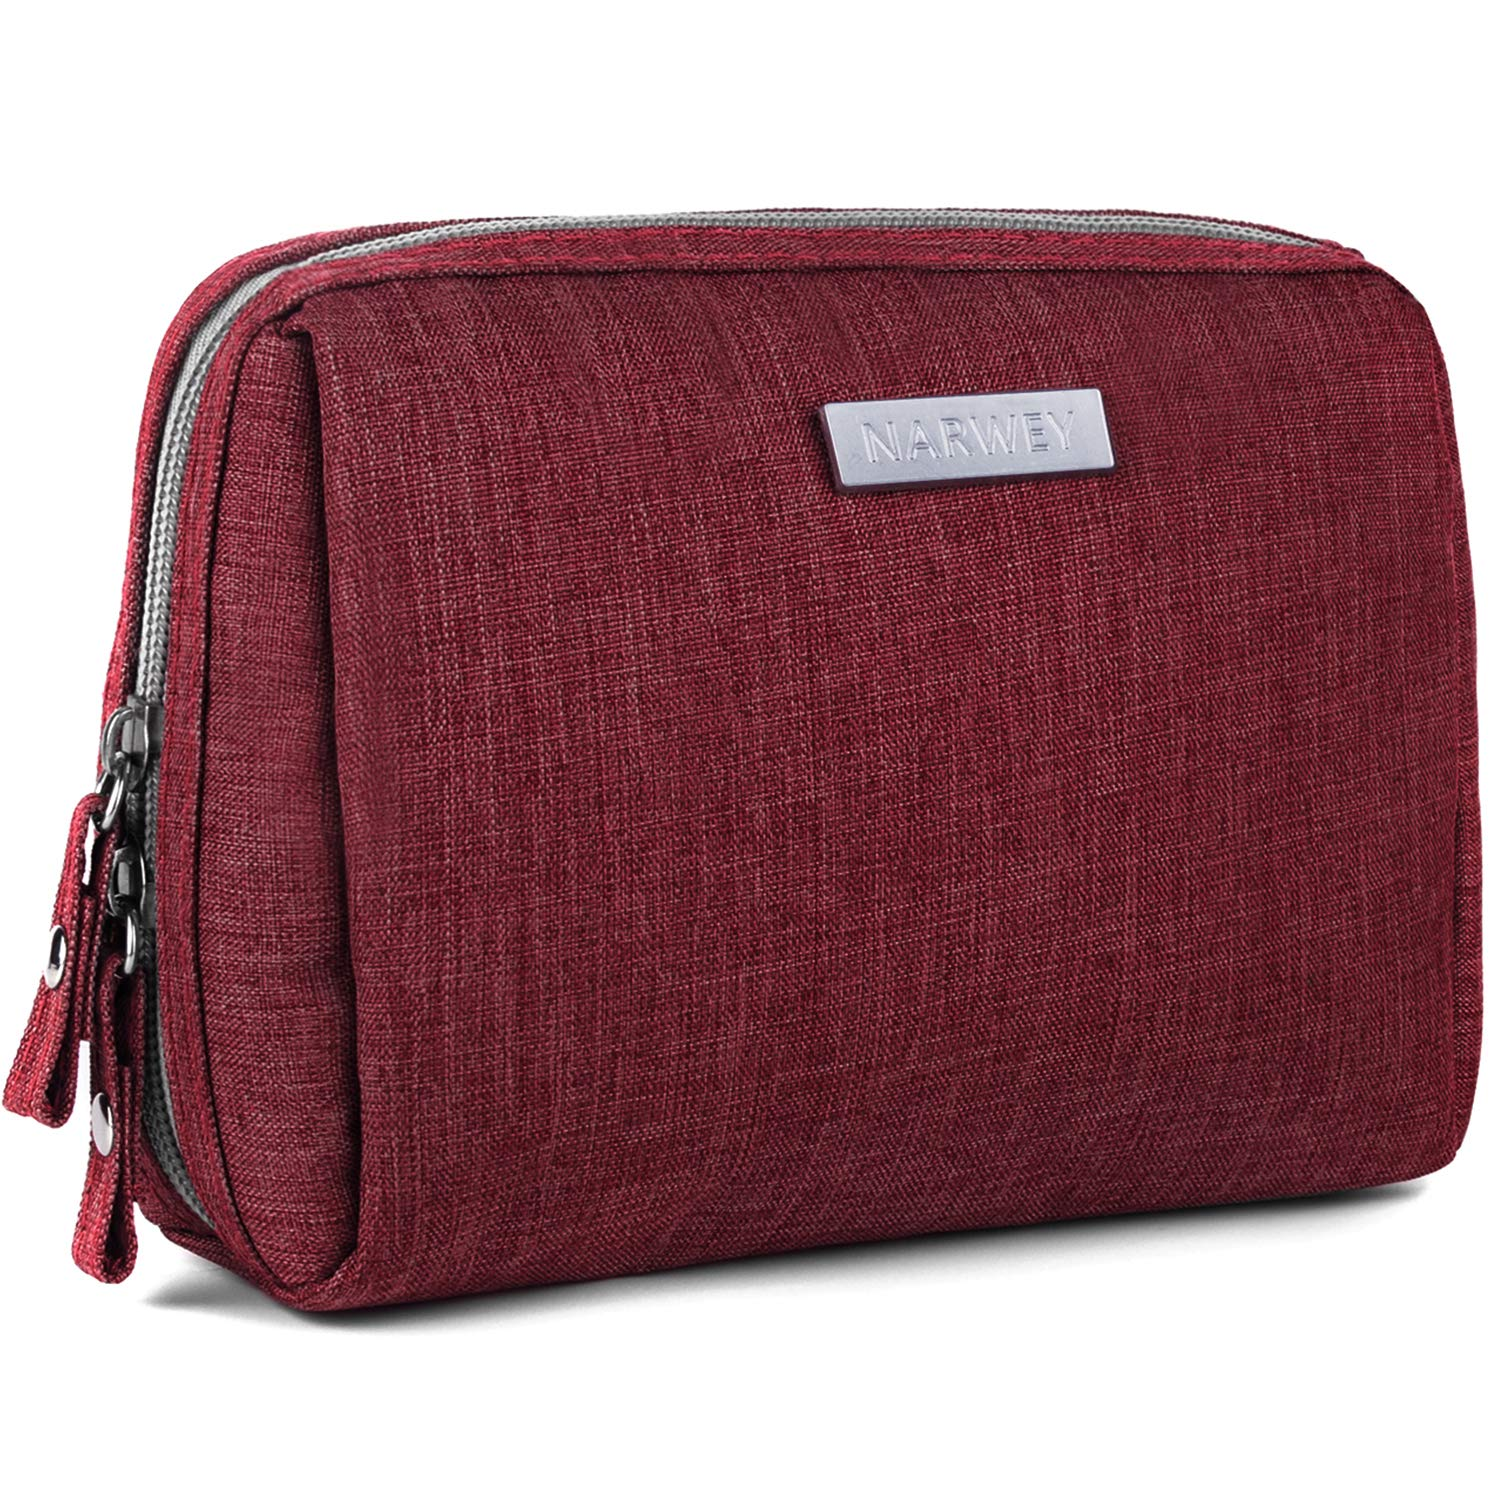 Small Makeup Bag for Purse Travel Makeup Pouch Mini Cosmetic Bag for Women Girls (Rectangle-Red)